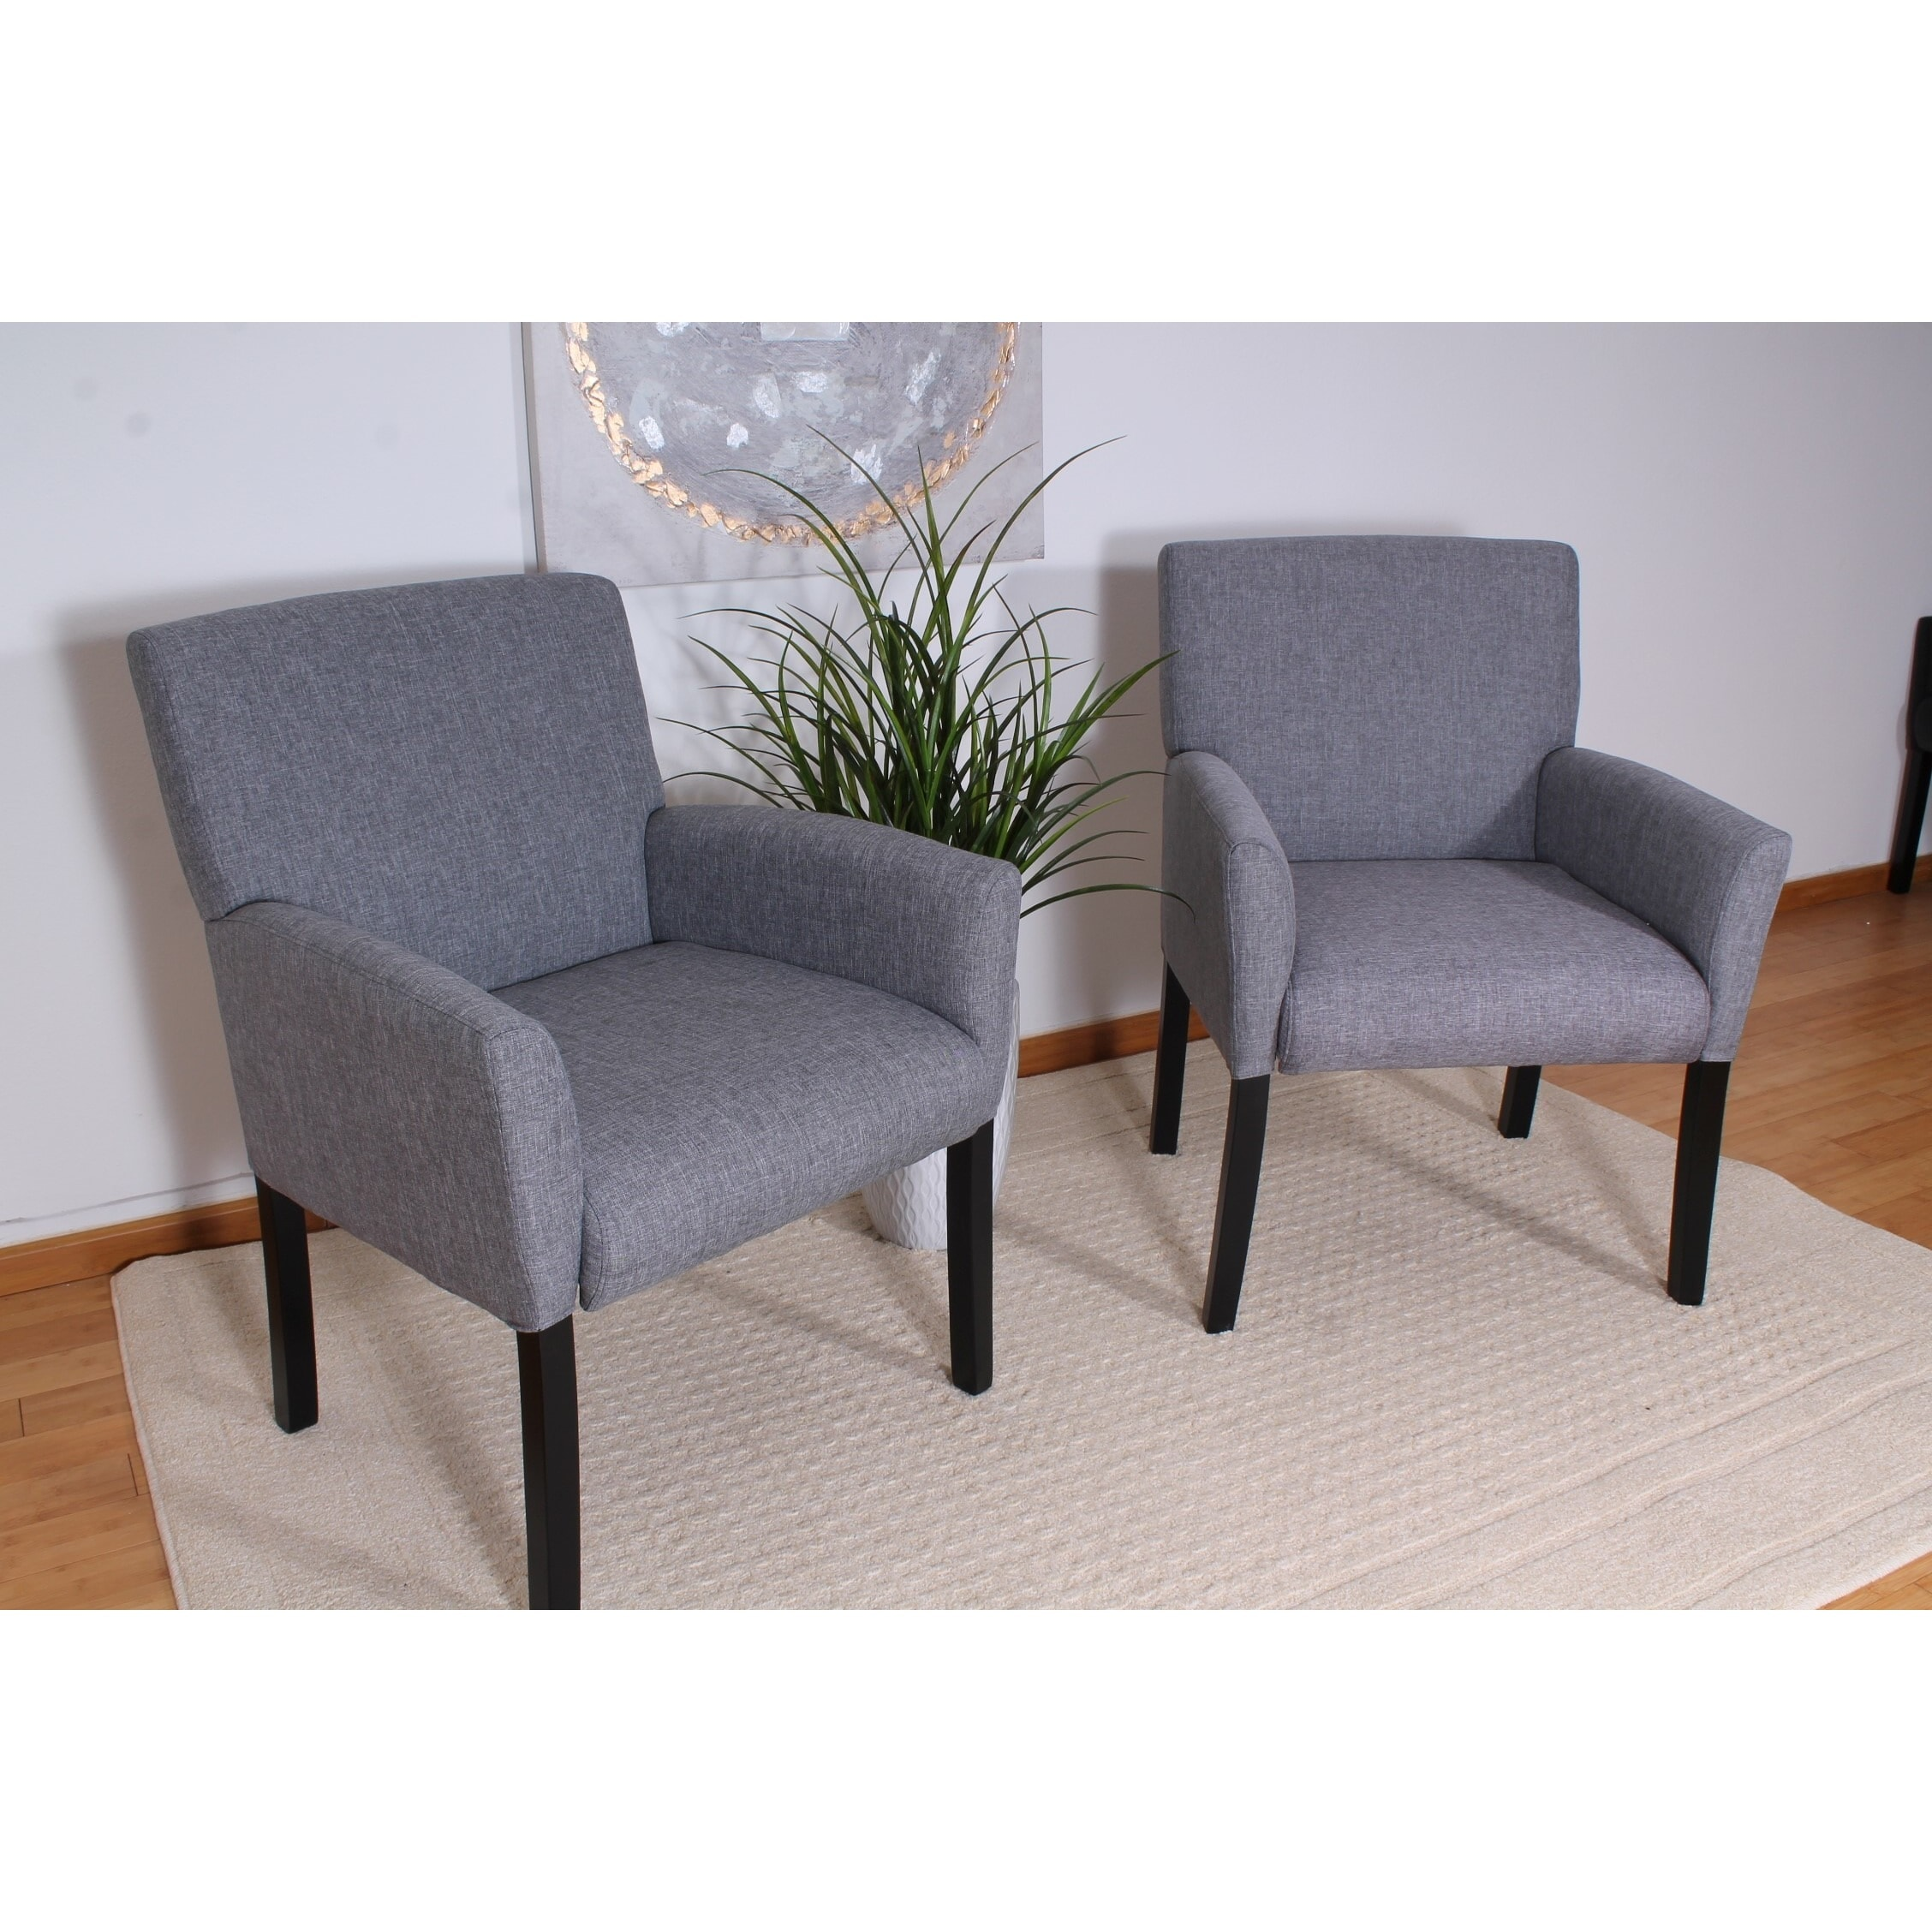 Best Chairs Ferdinand In Buy Visitor Chairs Online At Overstock Our Best Home Office